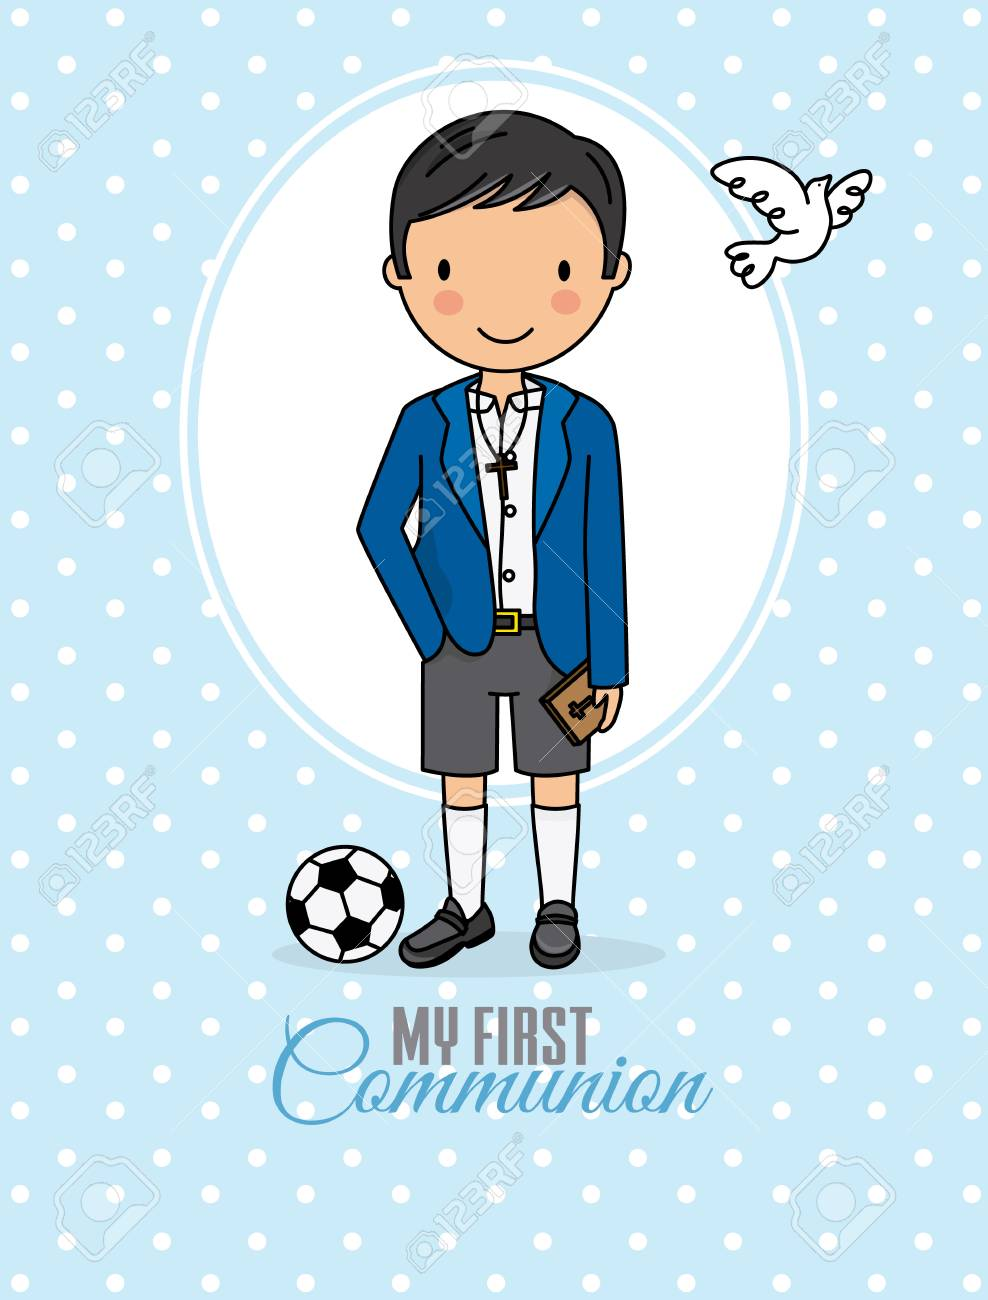 my first communion boy. Boy in communion costume and soccer ball - 112642202